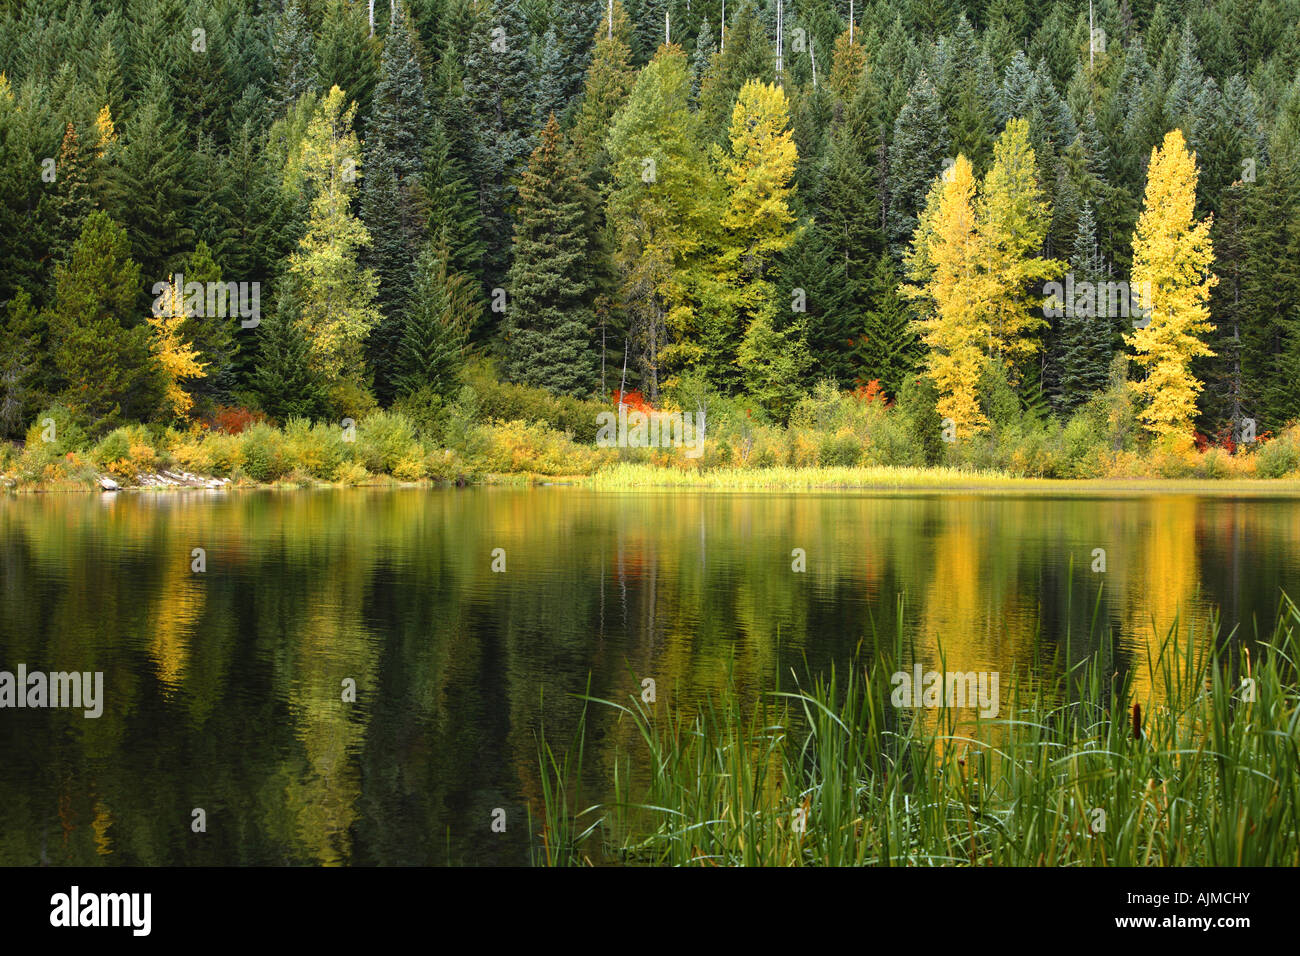 Fall colored trees reflected in lake - Stock Image